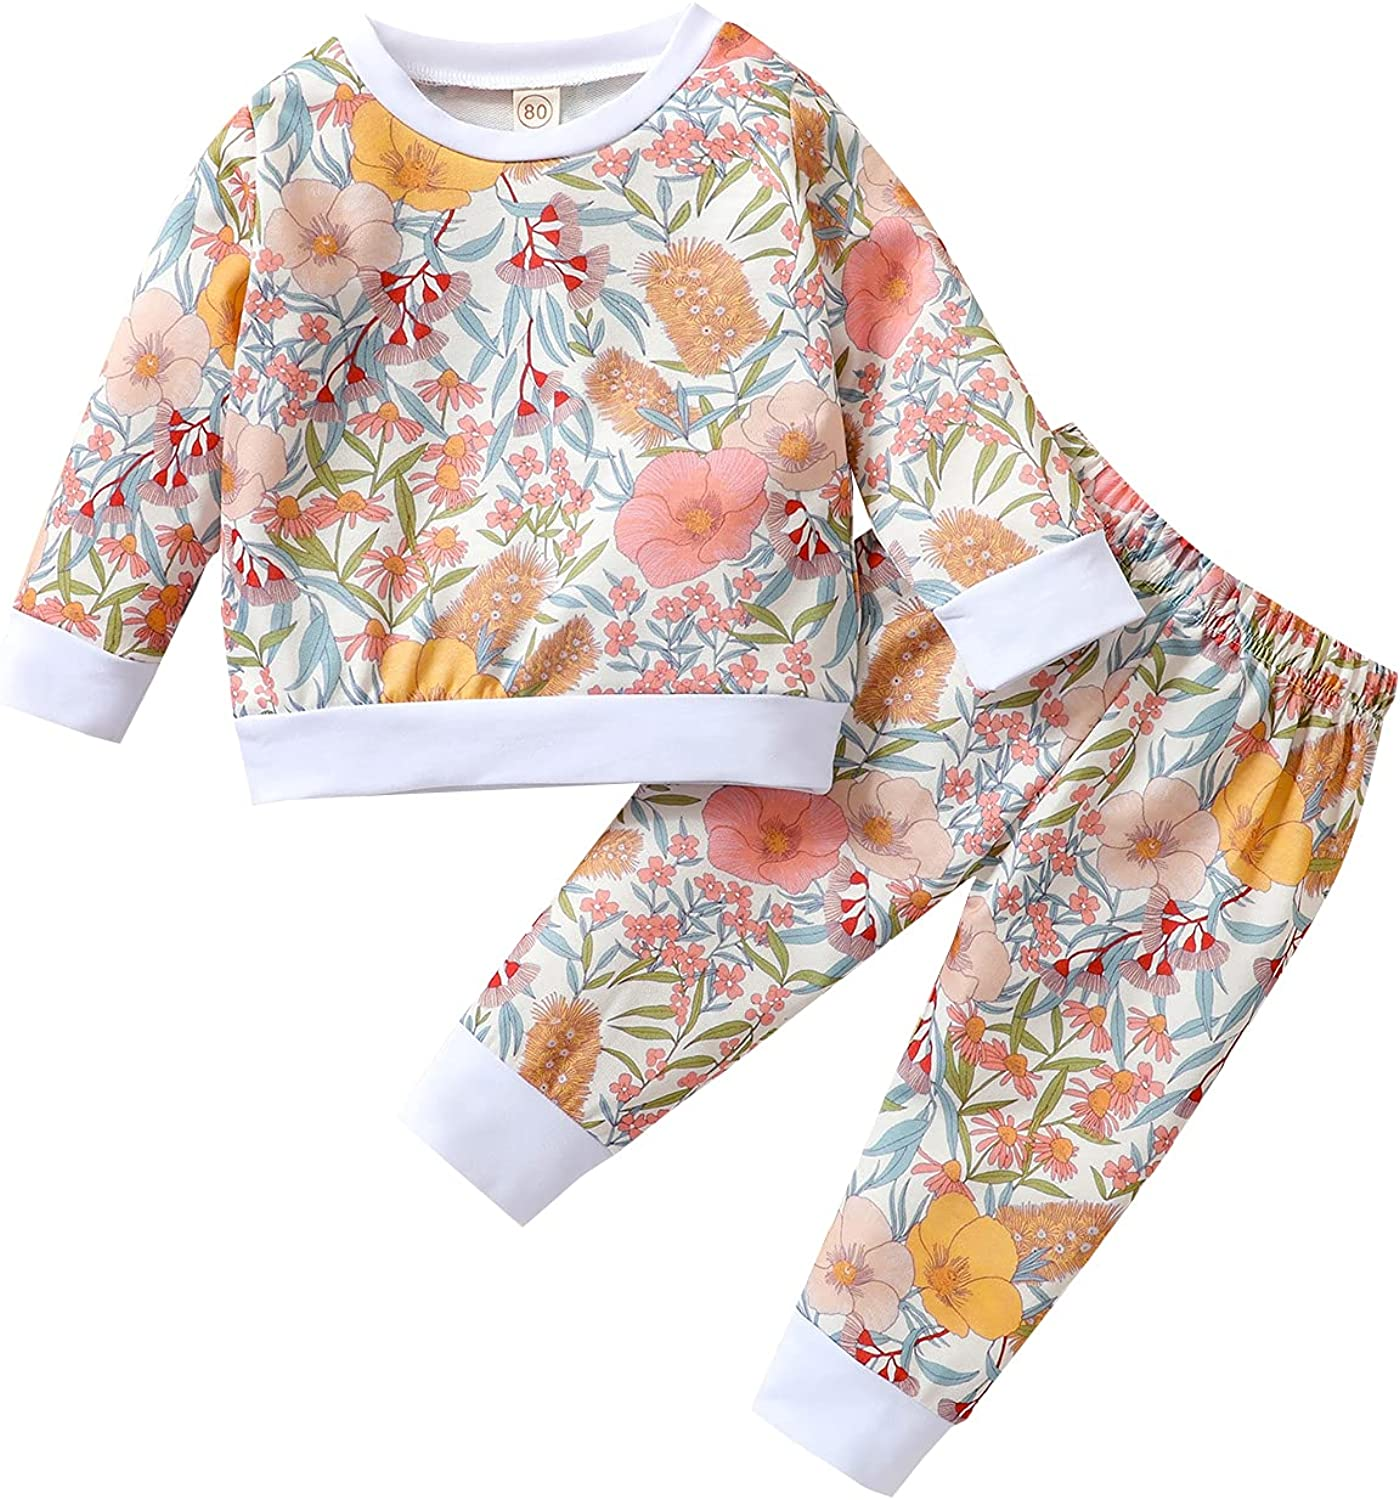 Winter Toddler Baby Girl Outfits Floral Tops and Pants Cute Clothes Set